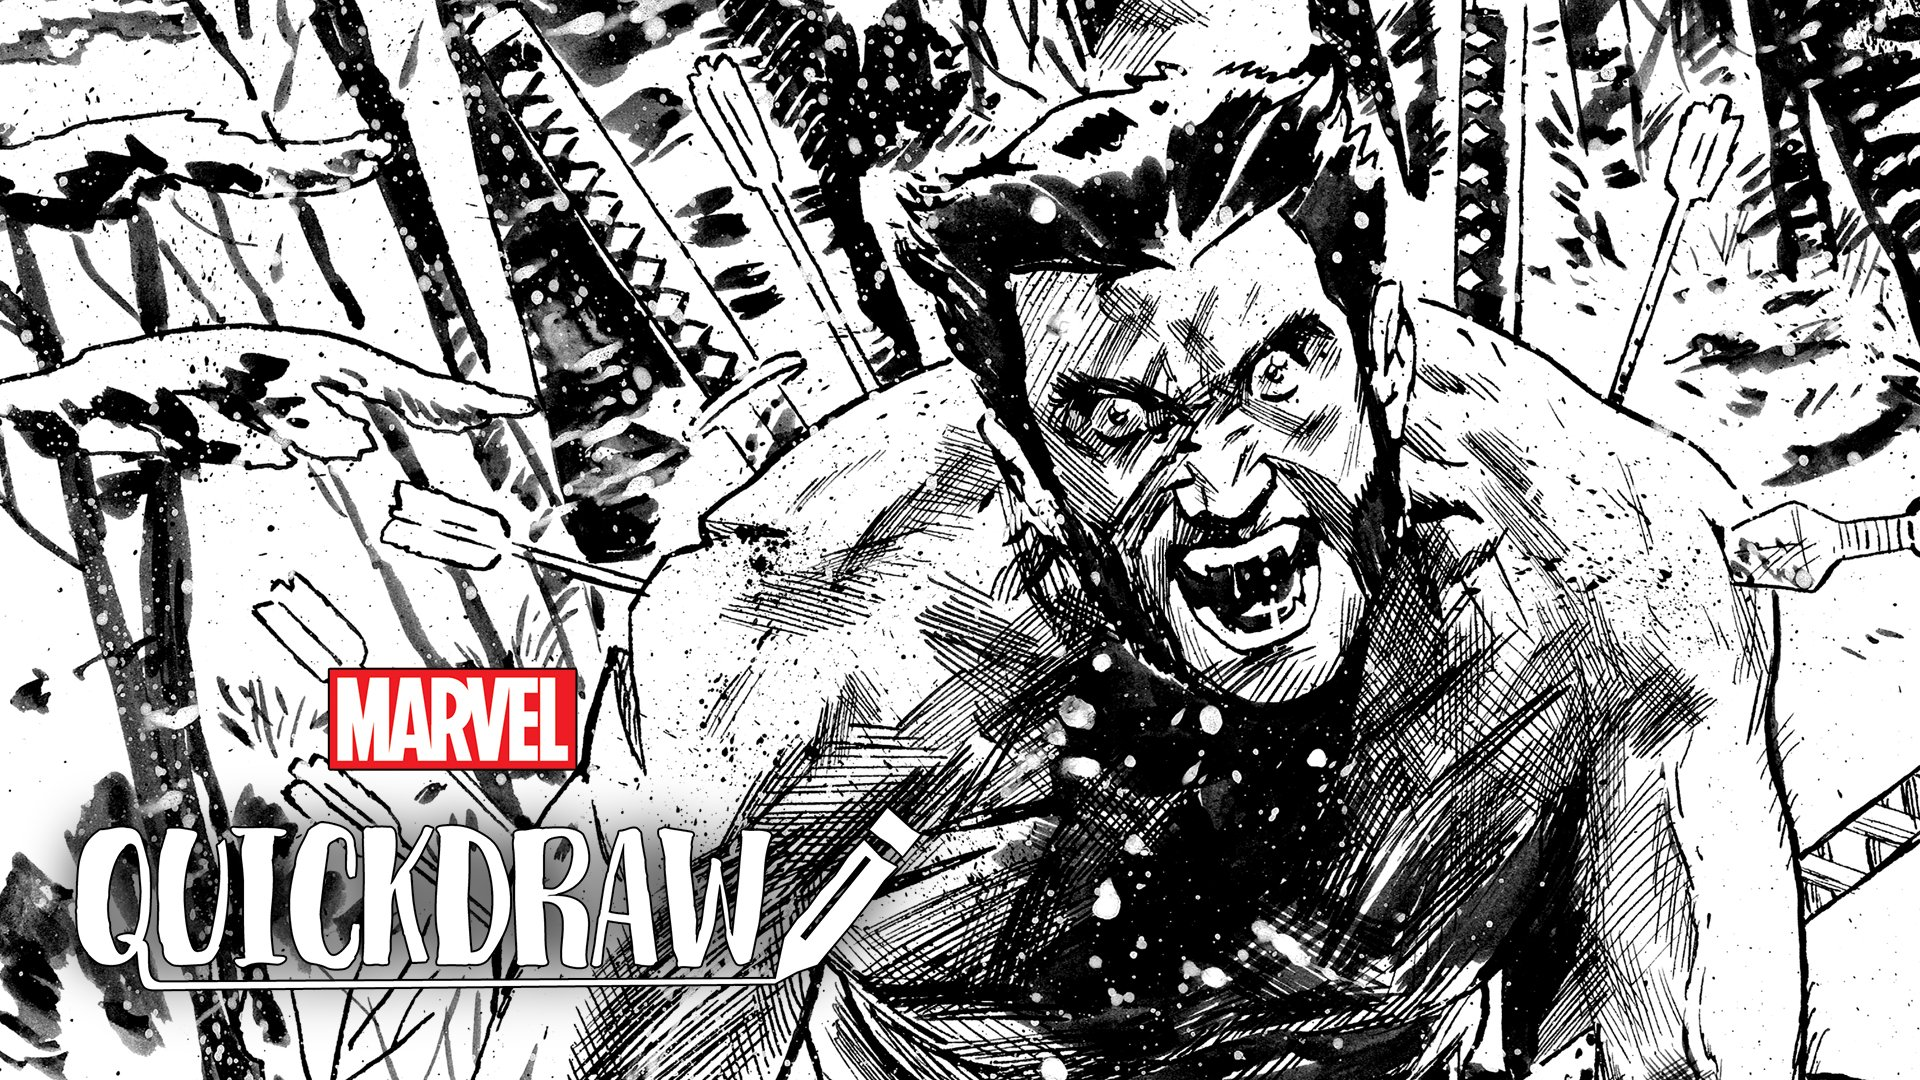 Artist @mister_walsh brings Wolverine to life in a new episode of #MarvelQuickdraw! ✏️ #ad https://t.co/75KDV2MPca